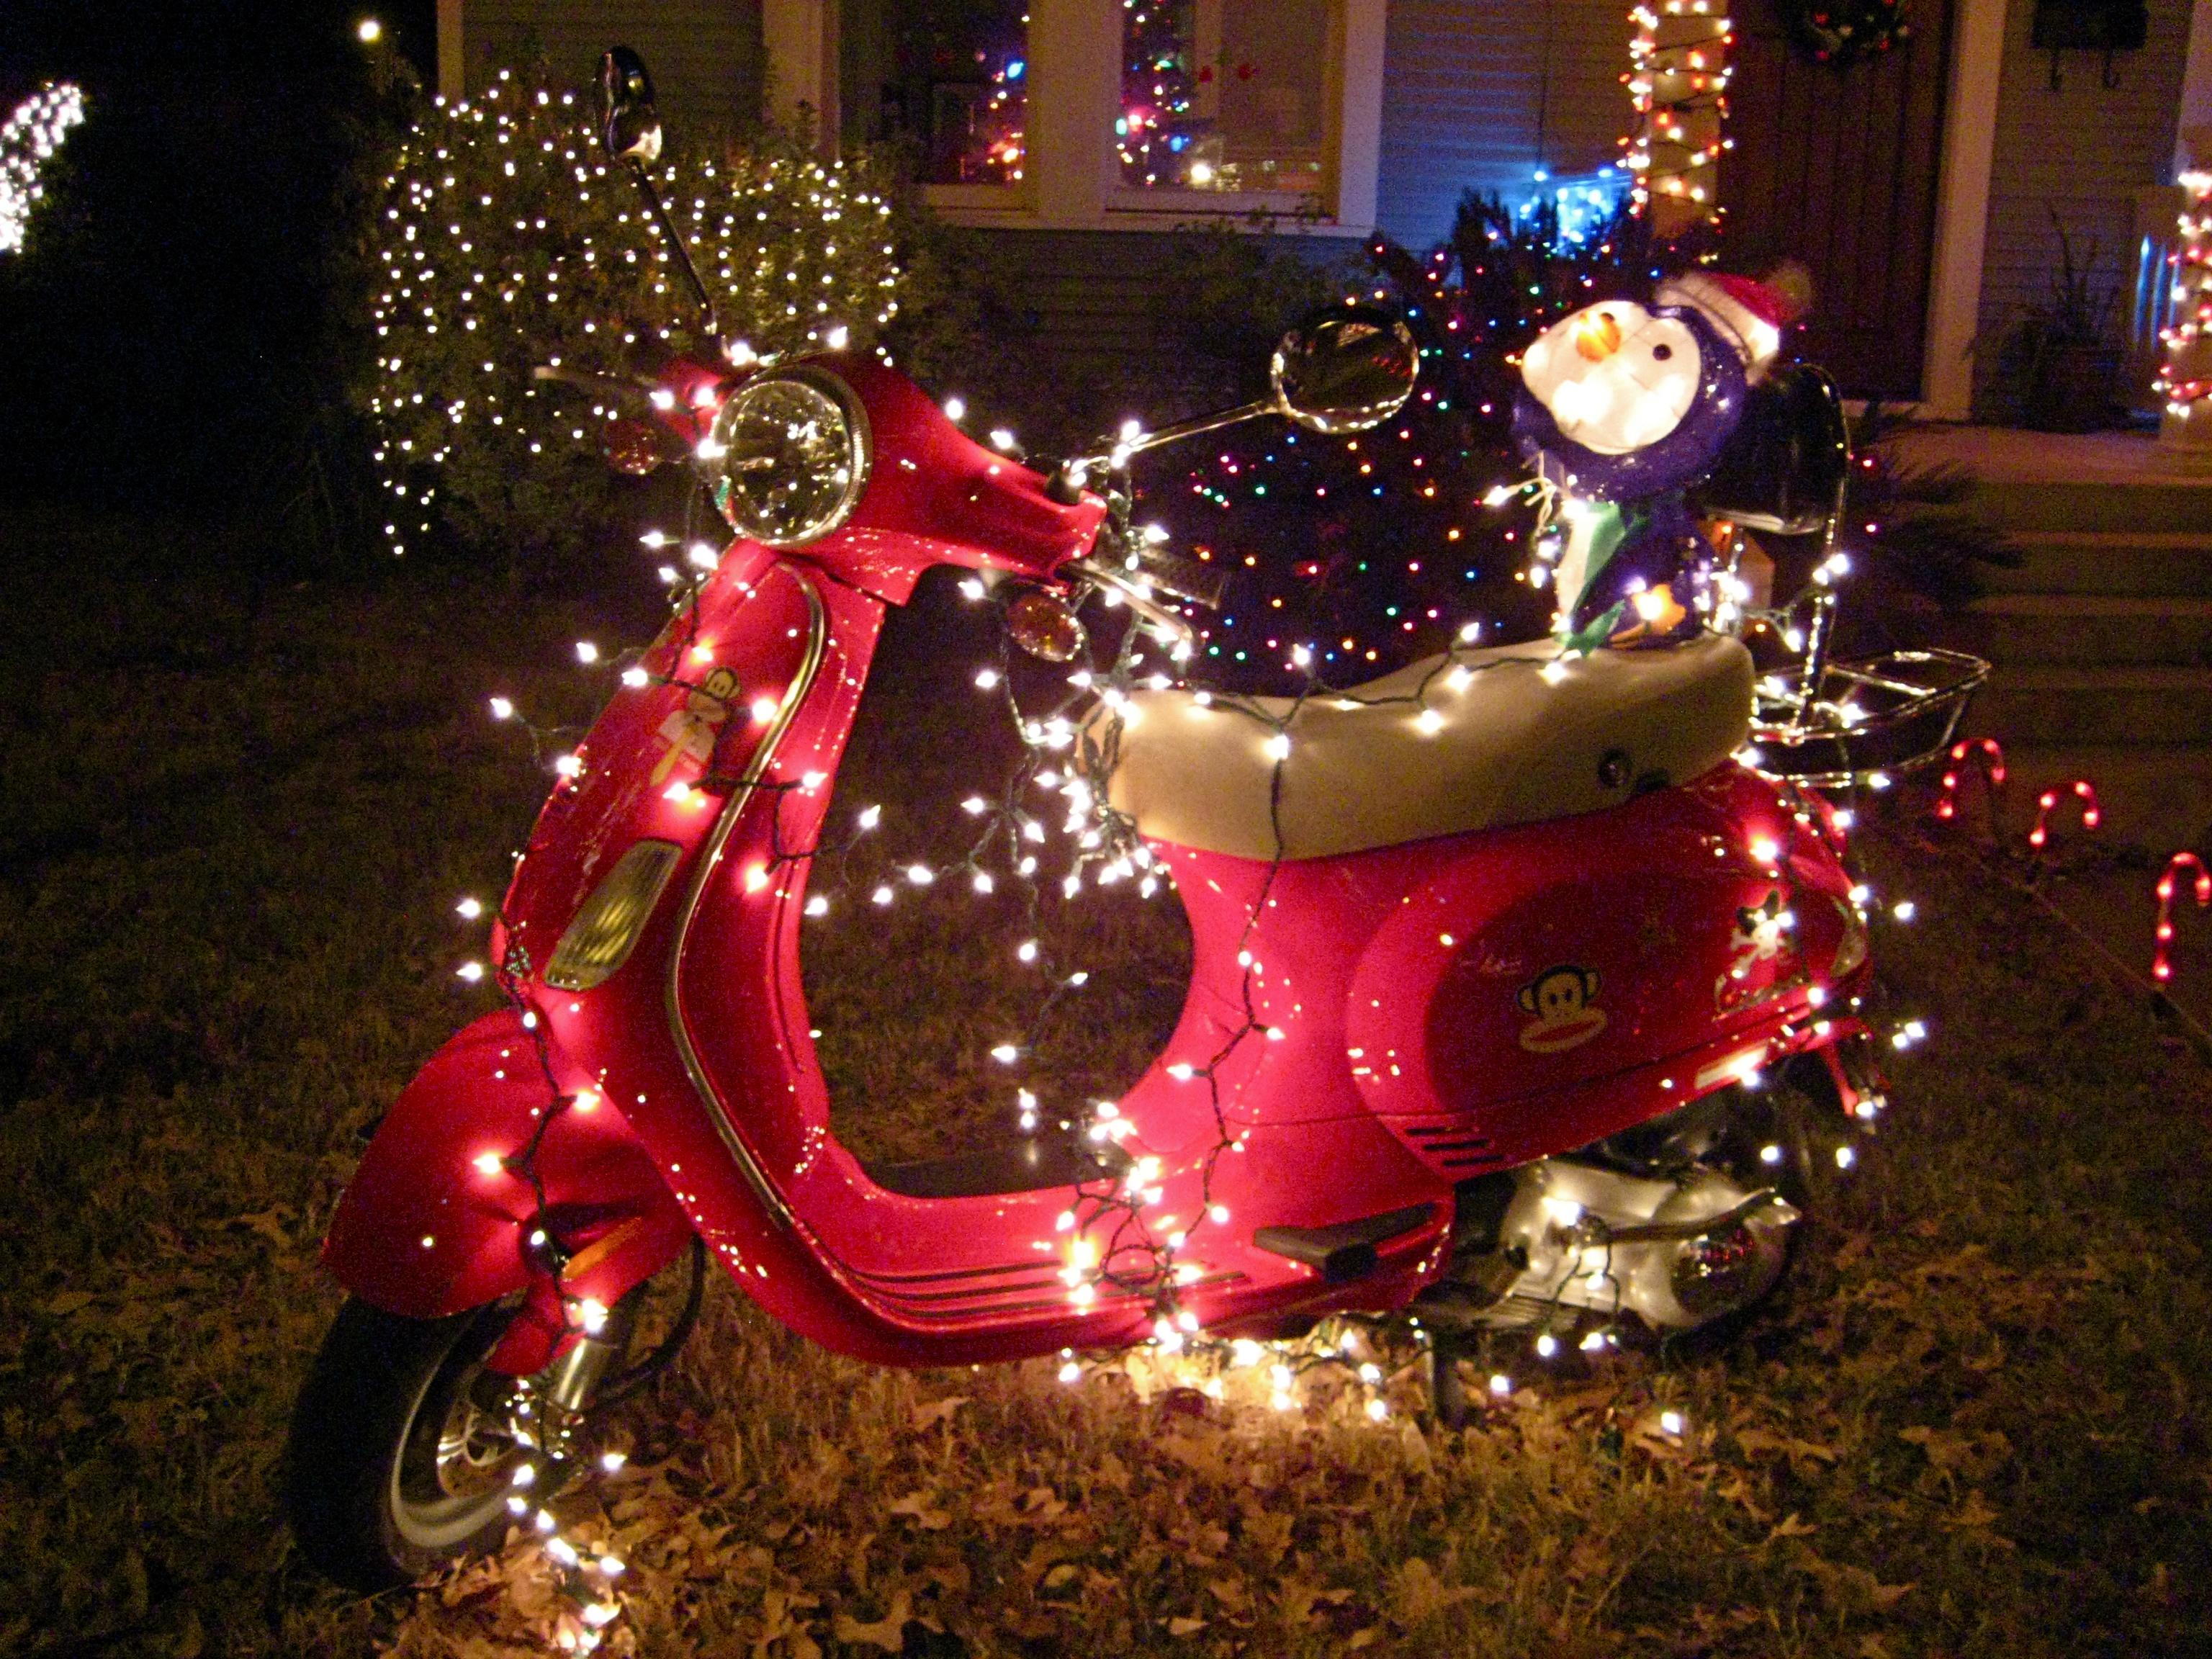 Red Scooter And Xmas Lights